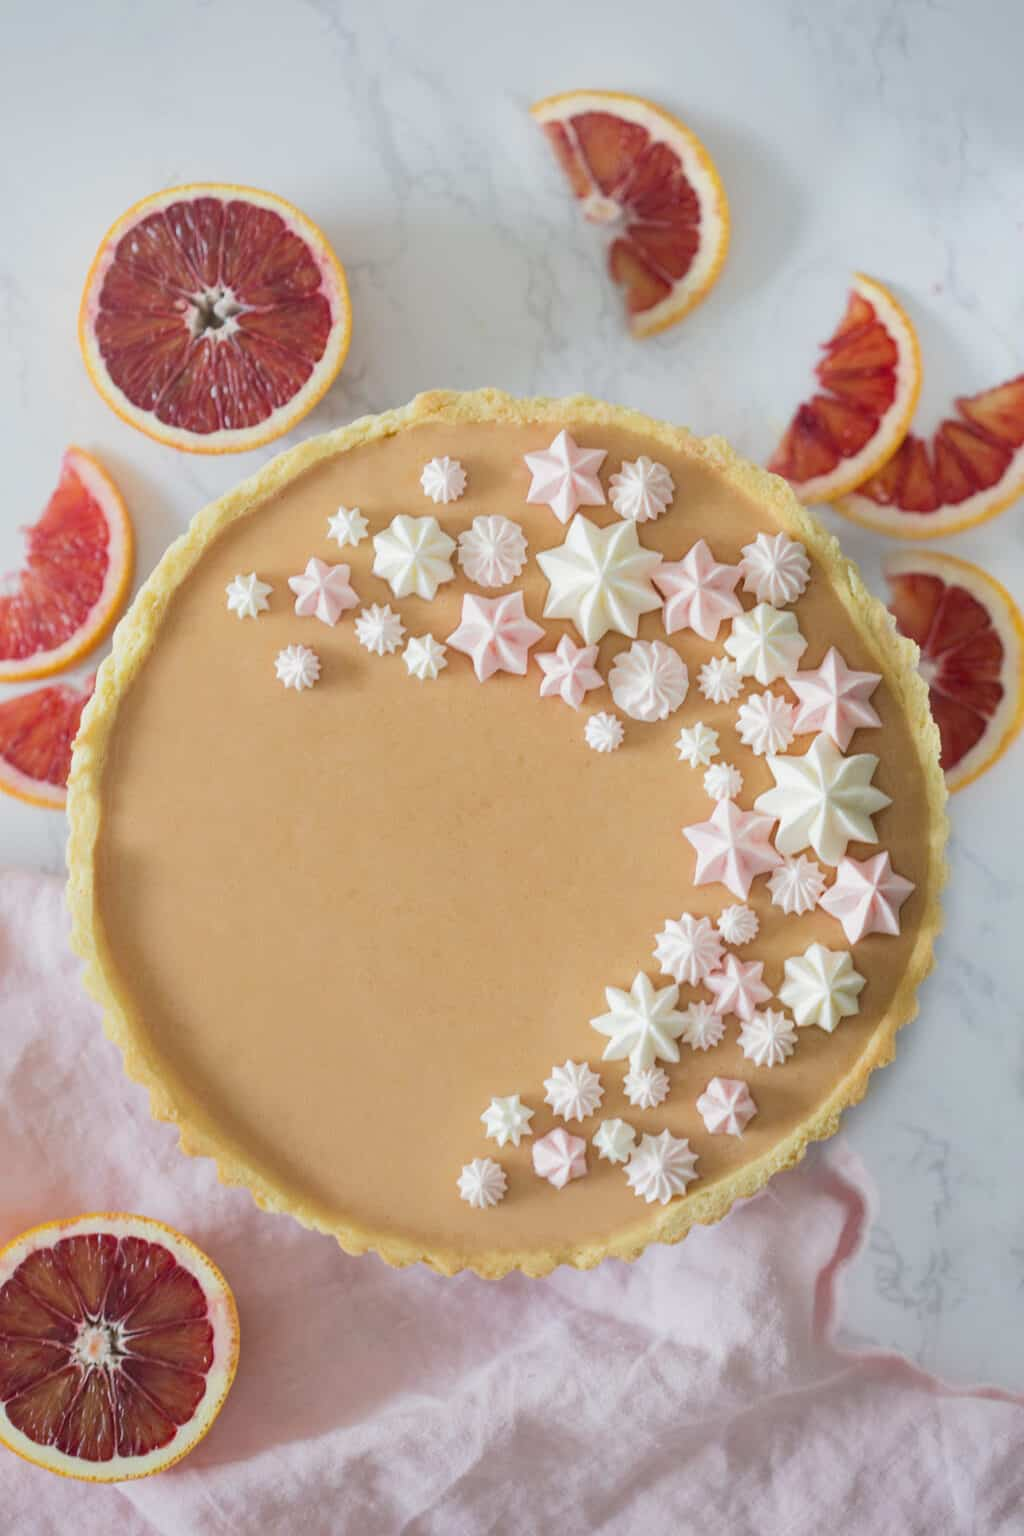 A blood orange curd tart with Swiss buttercream dollops on top.